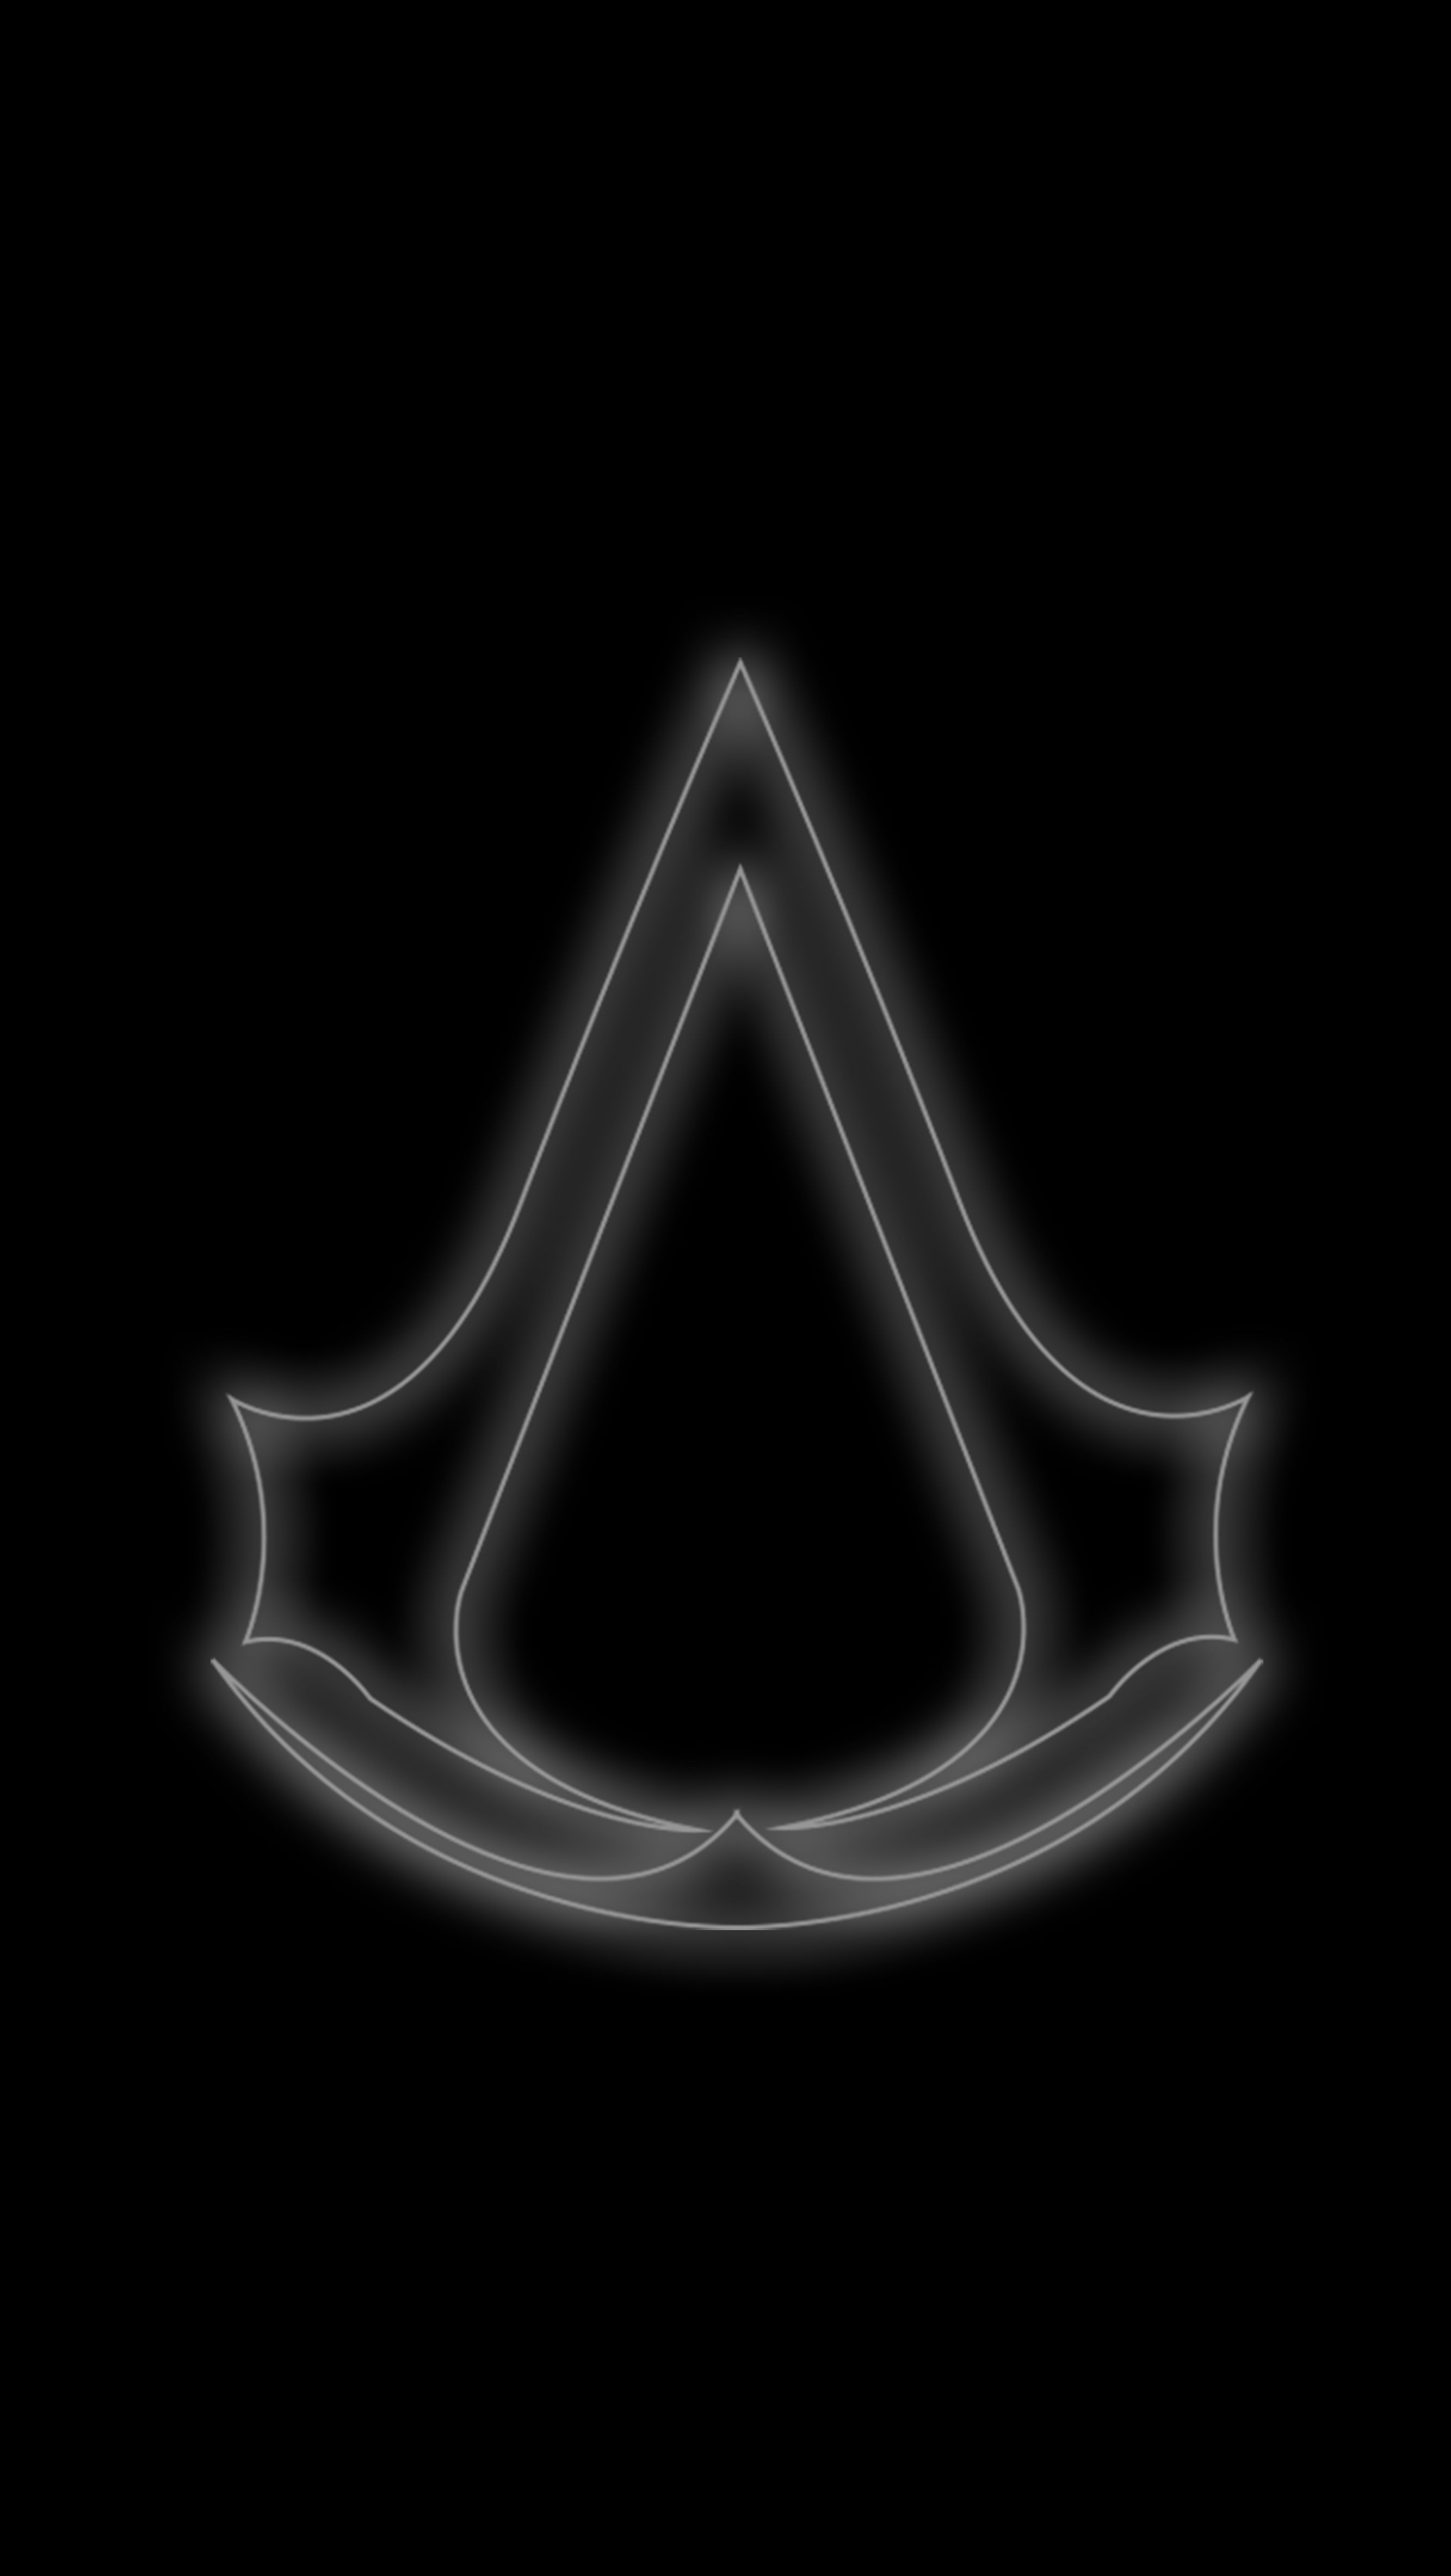 Neon Assassin S Creed Background For Your Phone Backgrounds For